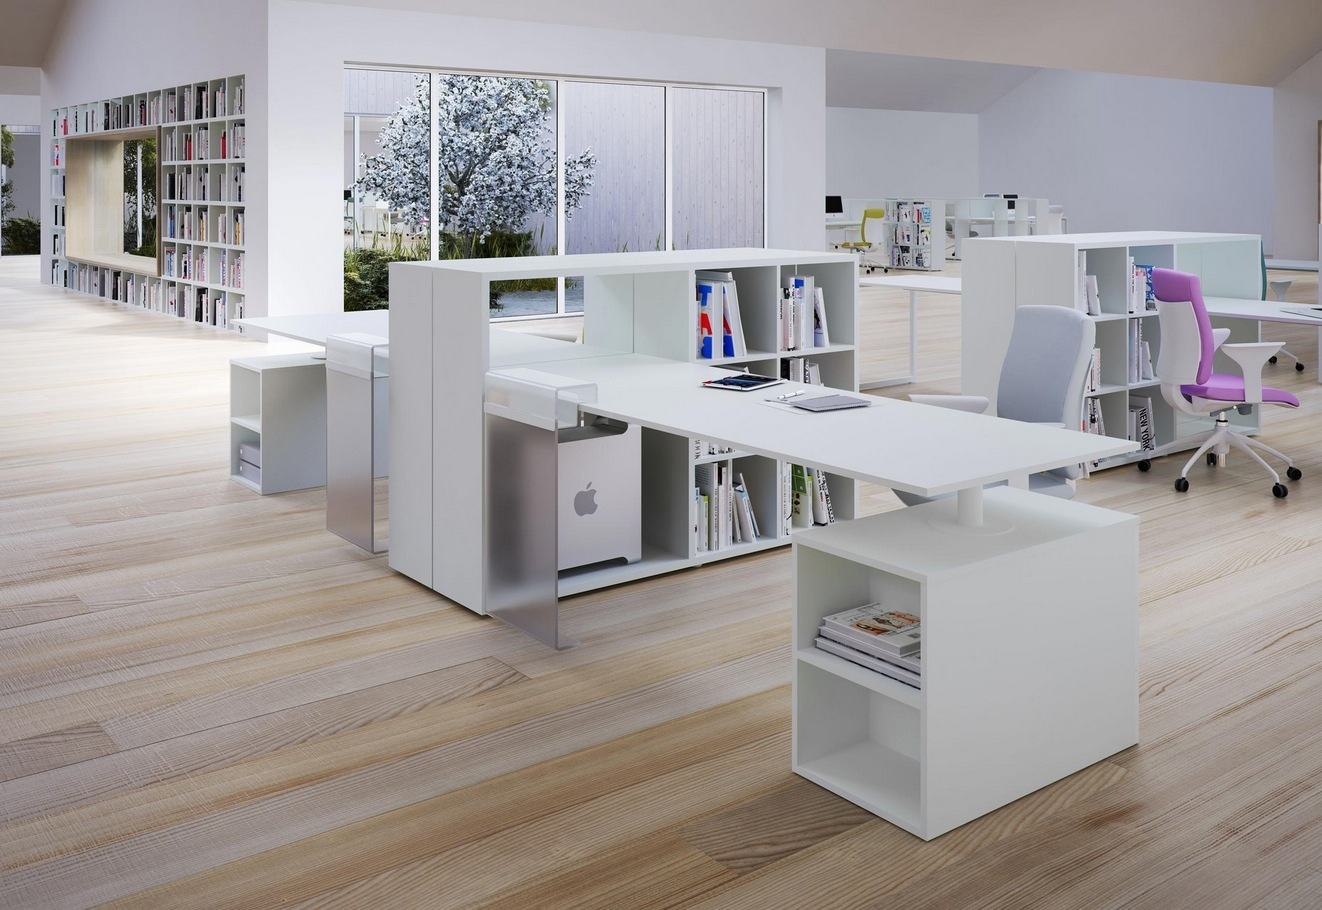 30 inspirational home office desks Modern home office design ideas